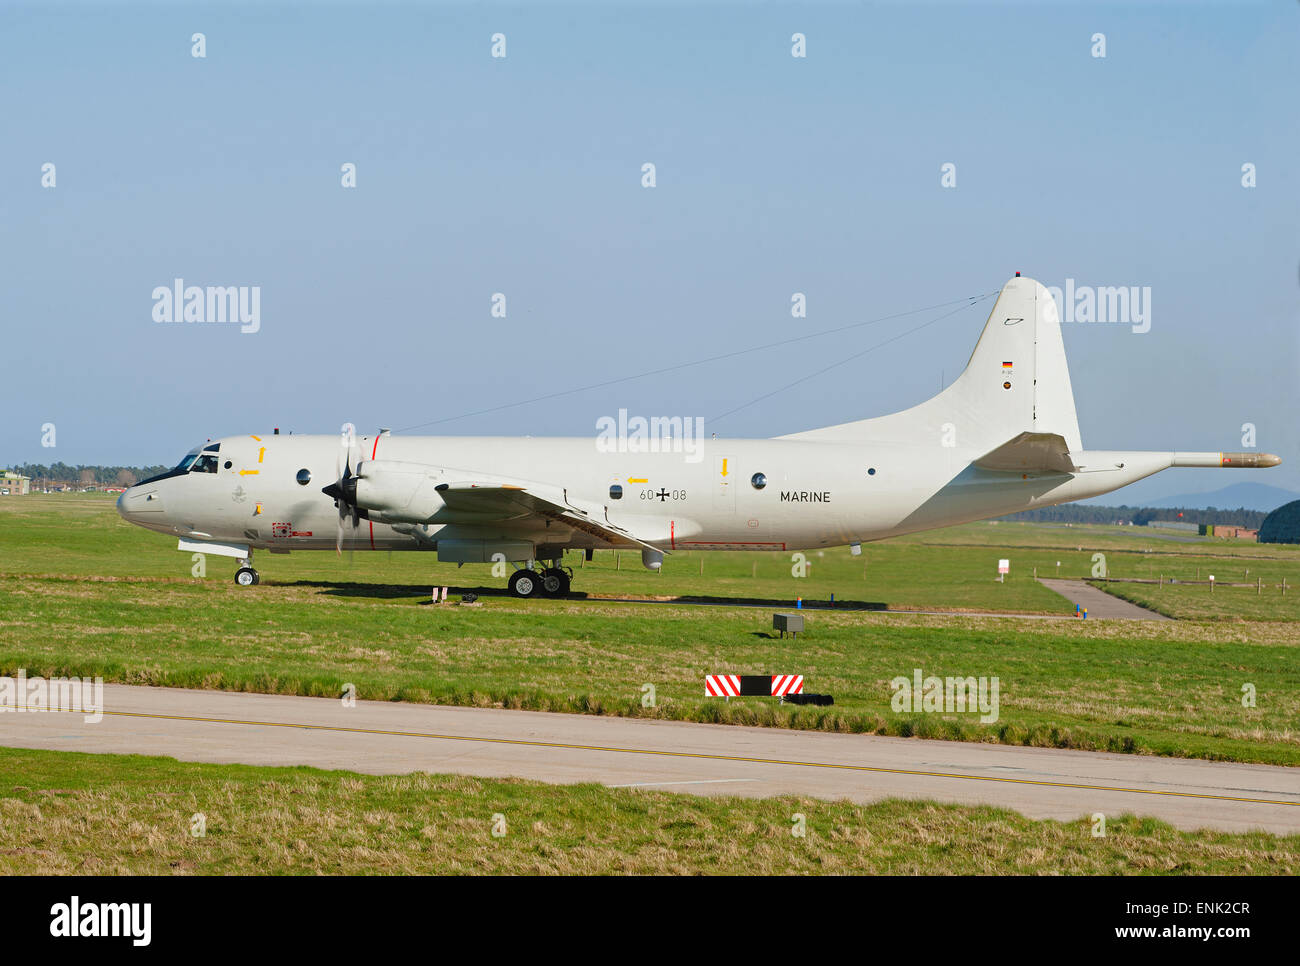 German Navy Maritime P3C Orion ASW Long Range Aircraft Serial Registration 60+08 at RAF Lossiemouth Scotland.  SCO 9729. Stock Photo